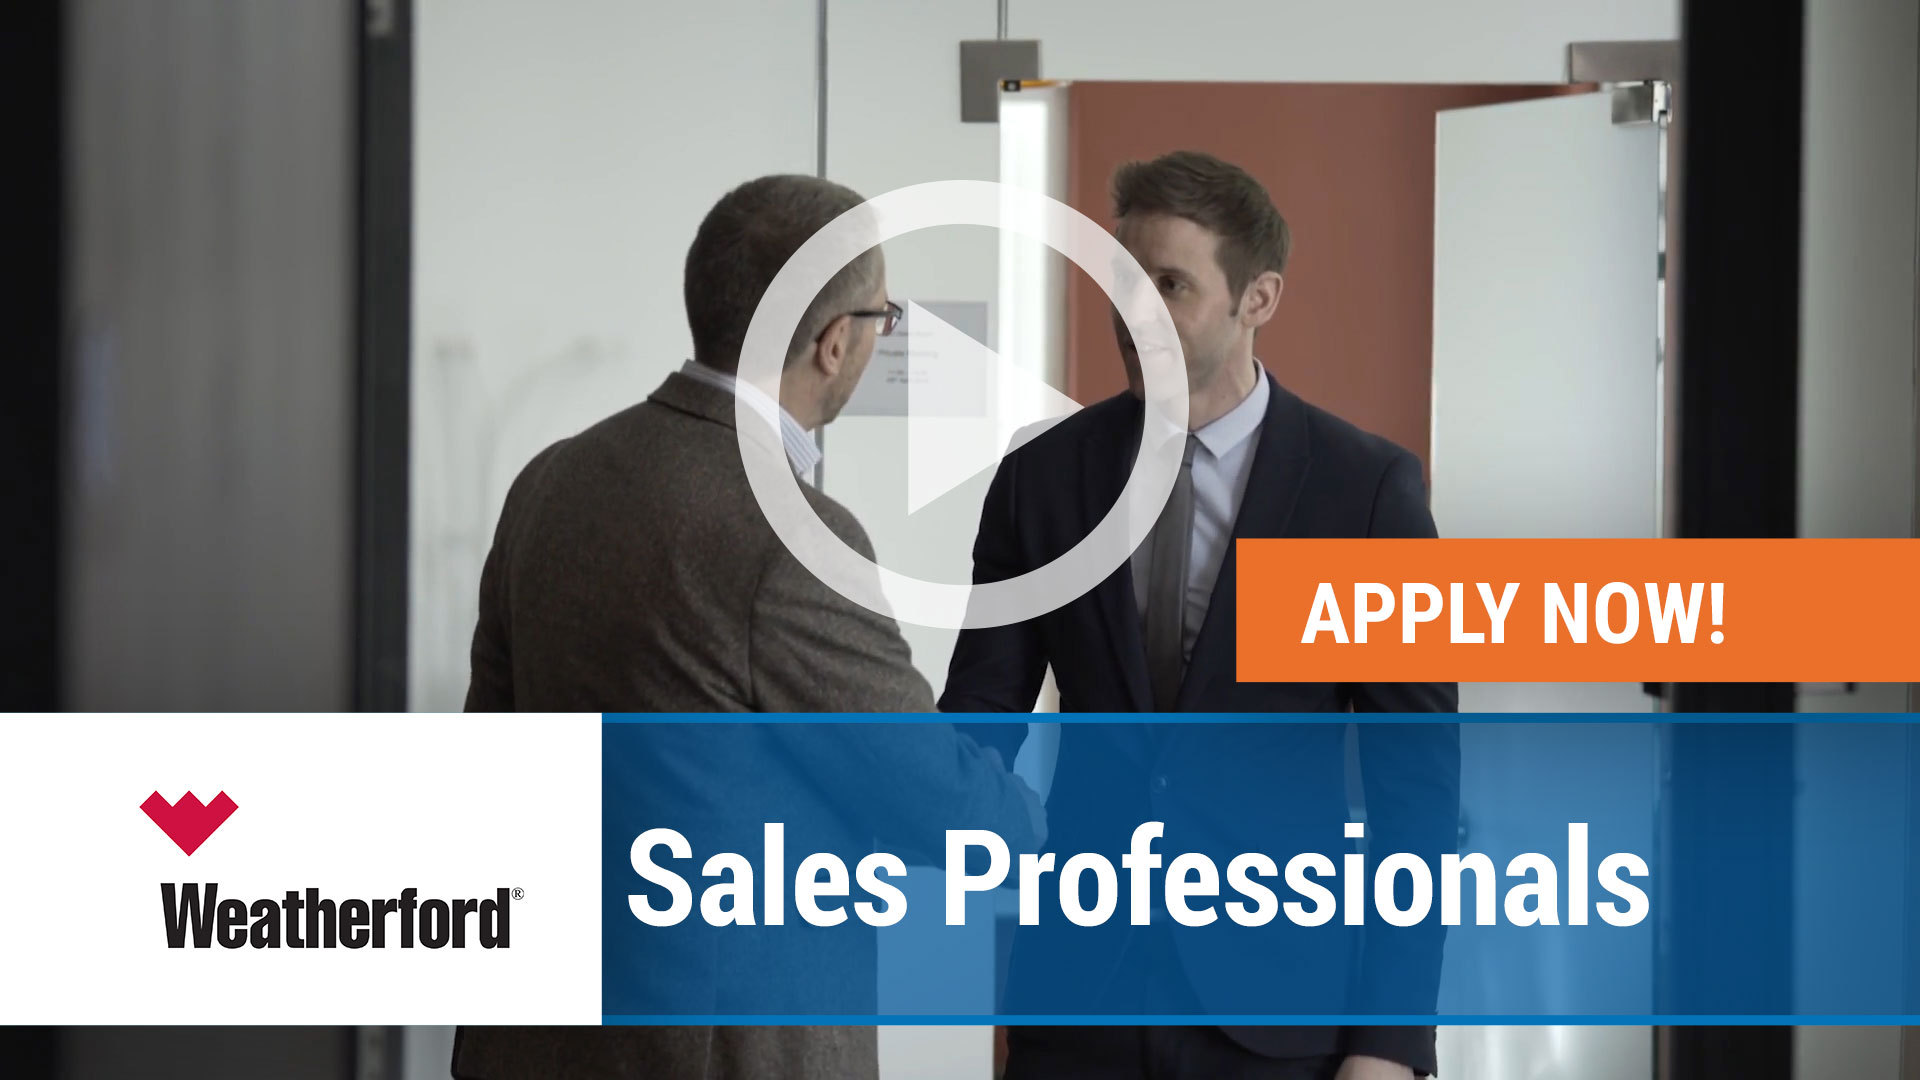 Watch our careers video for available job opening Weatherford Sales Professionals in Odessa, TX, USA